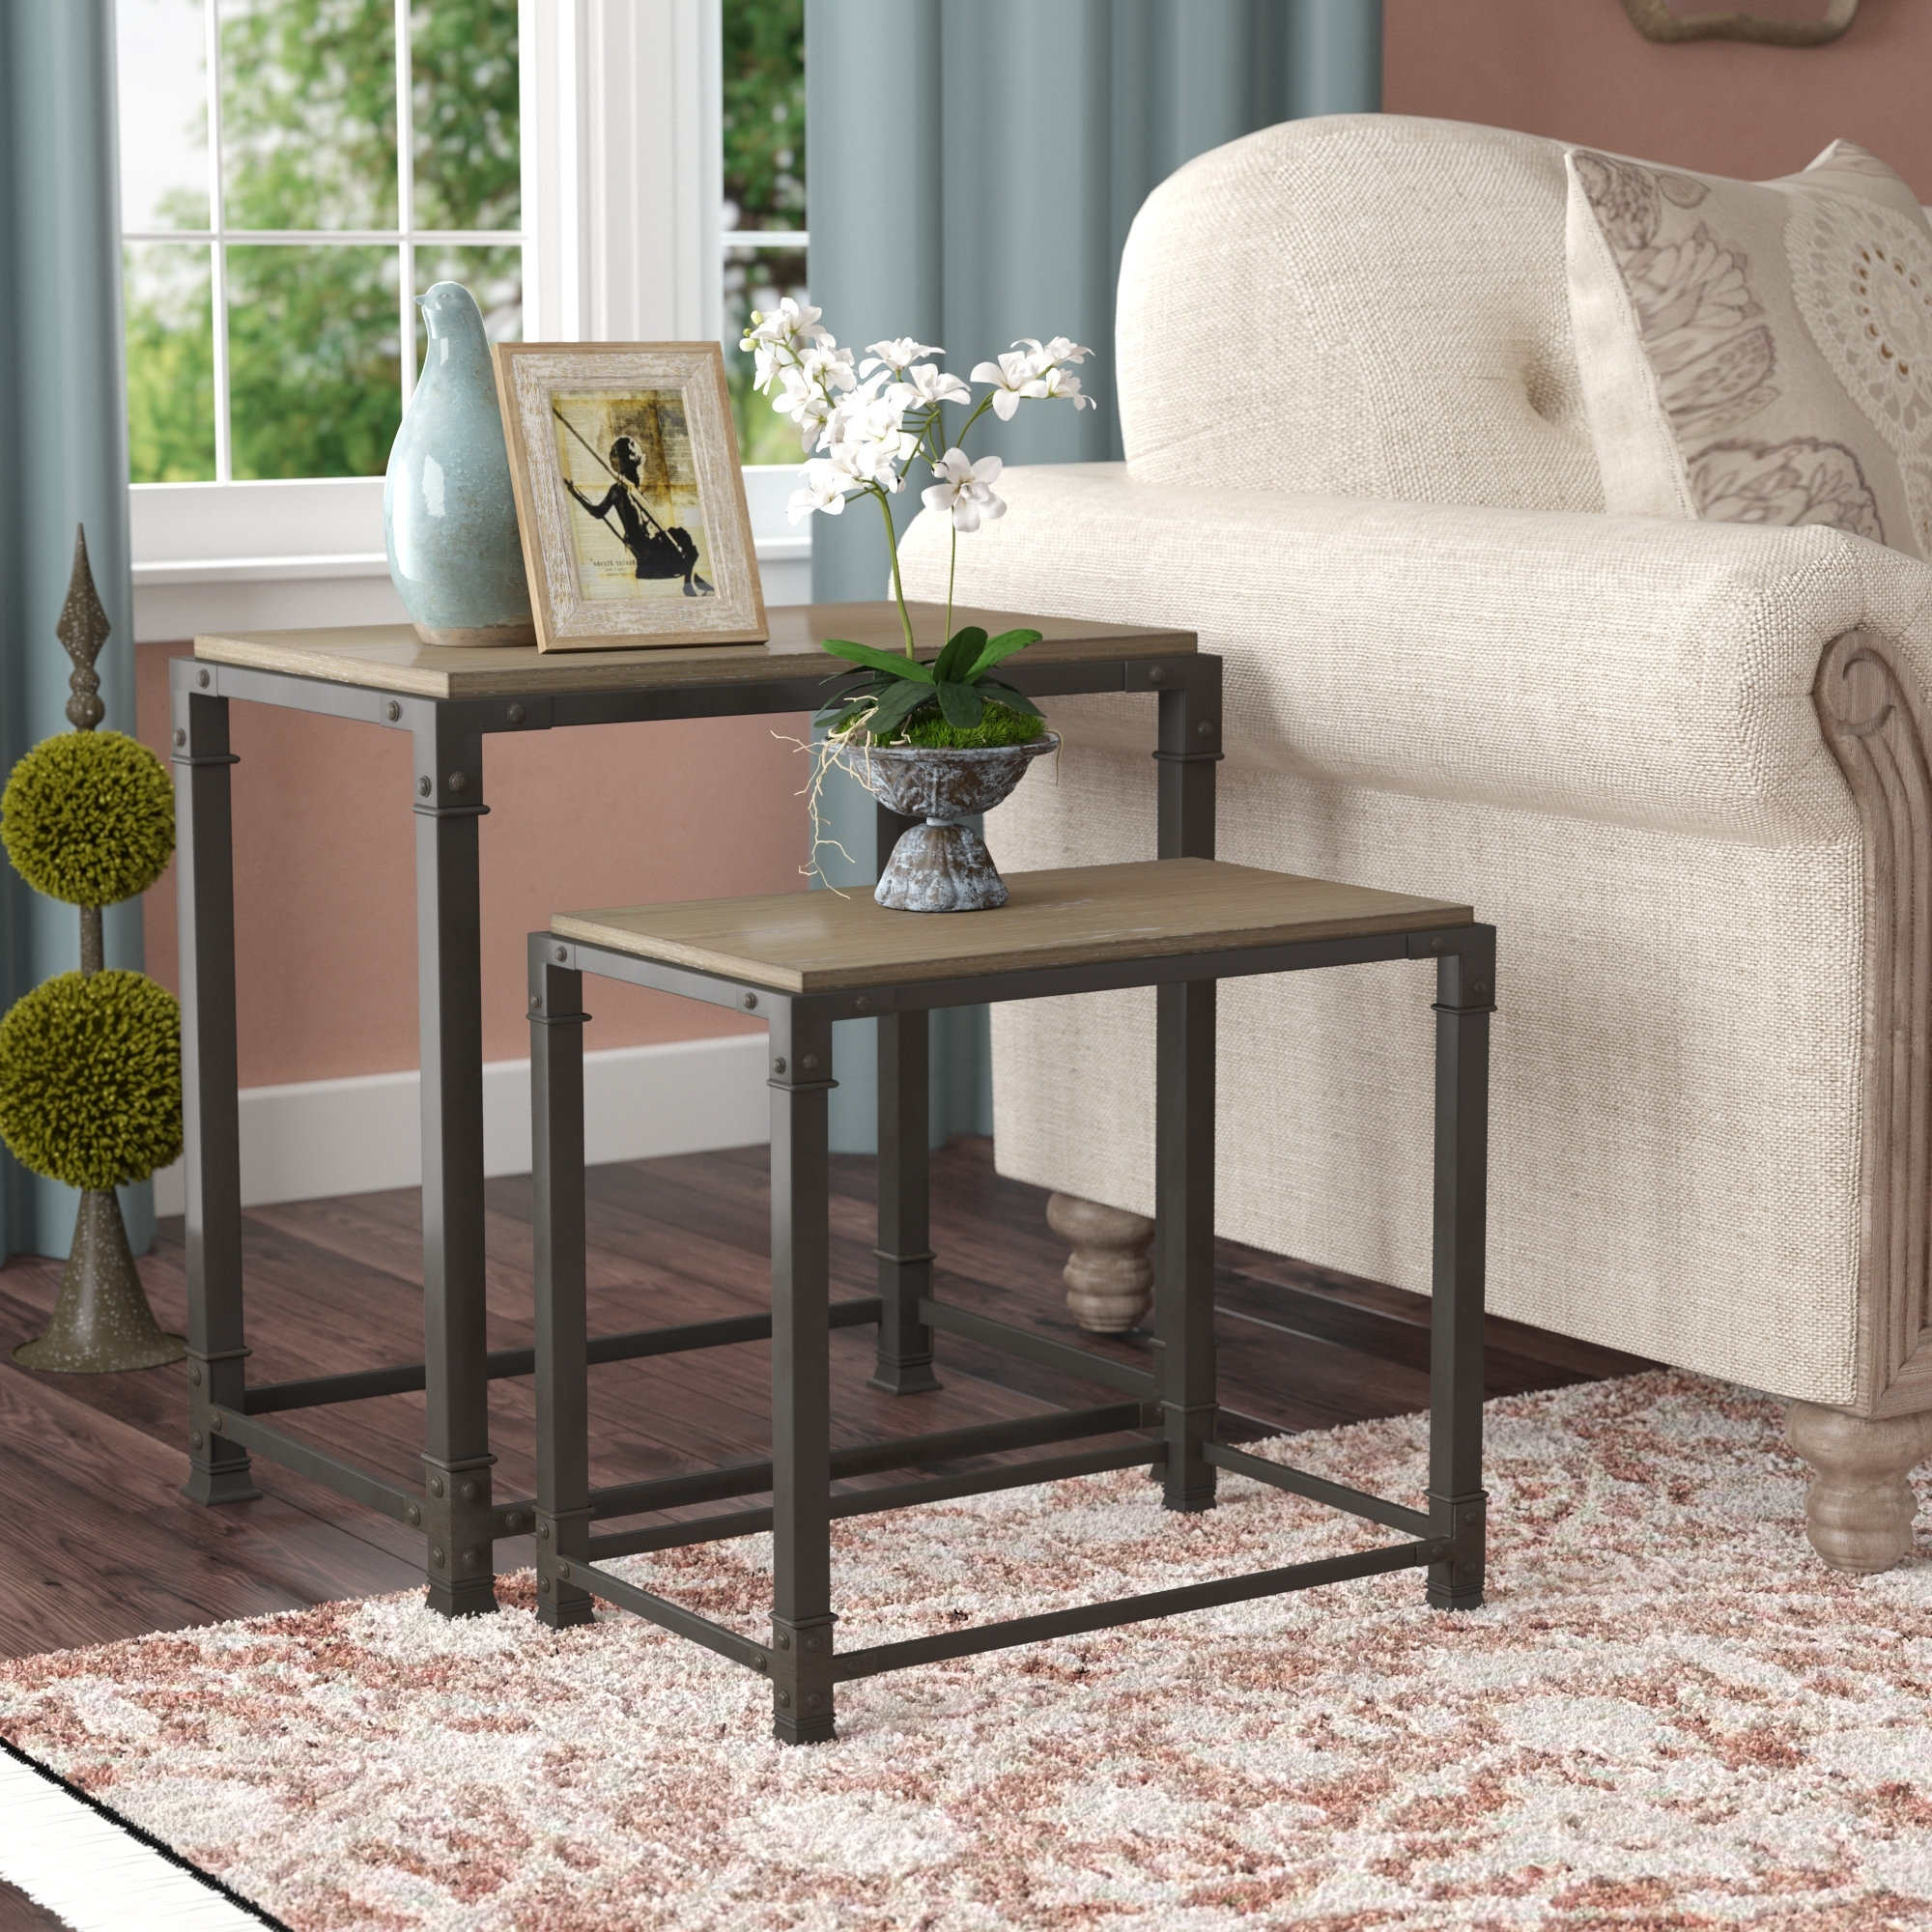 Most Recent Large Scale Chinese Farmhouse Coffee Tables With Laurel Foundry Modern Farmhouse Remy 2 Piece Nesting Tables (View 12 of 20)